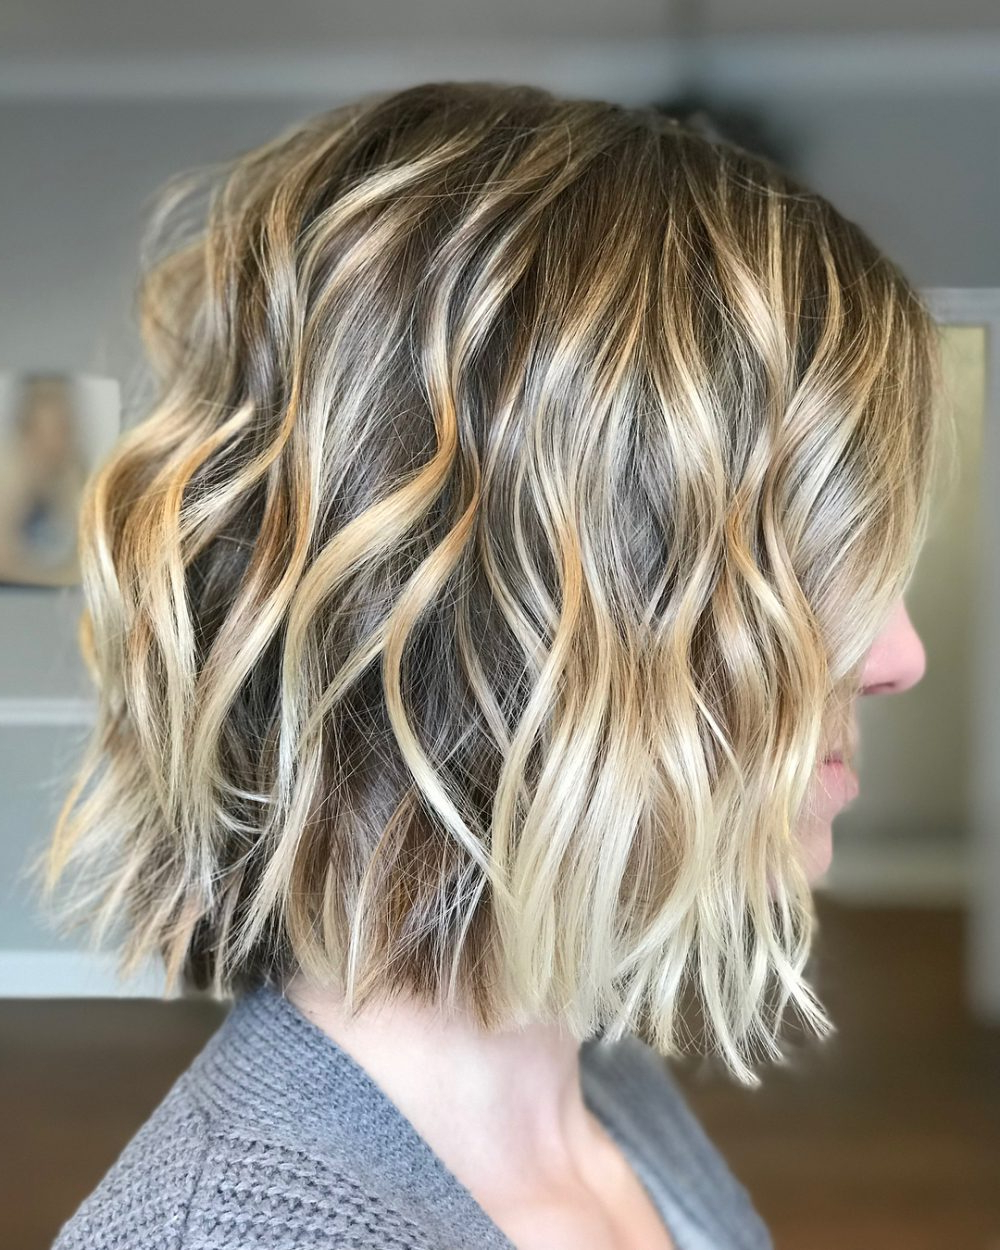 Top 22 Choppy Hairstyles You'll See In 2019 Inside Famous Piece Y Medium Length Hairstyles (Gallery 10 of 20)